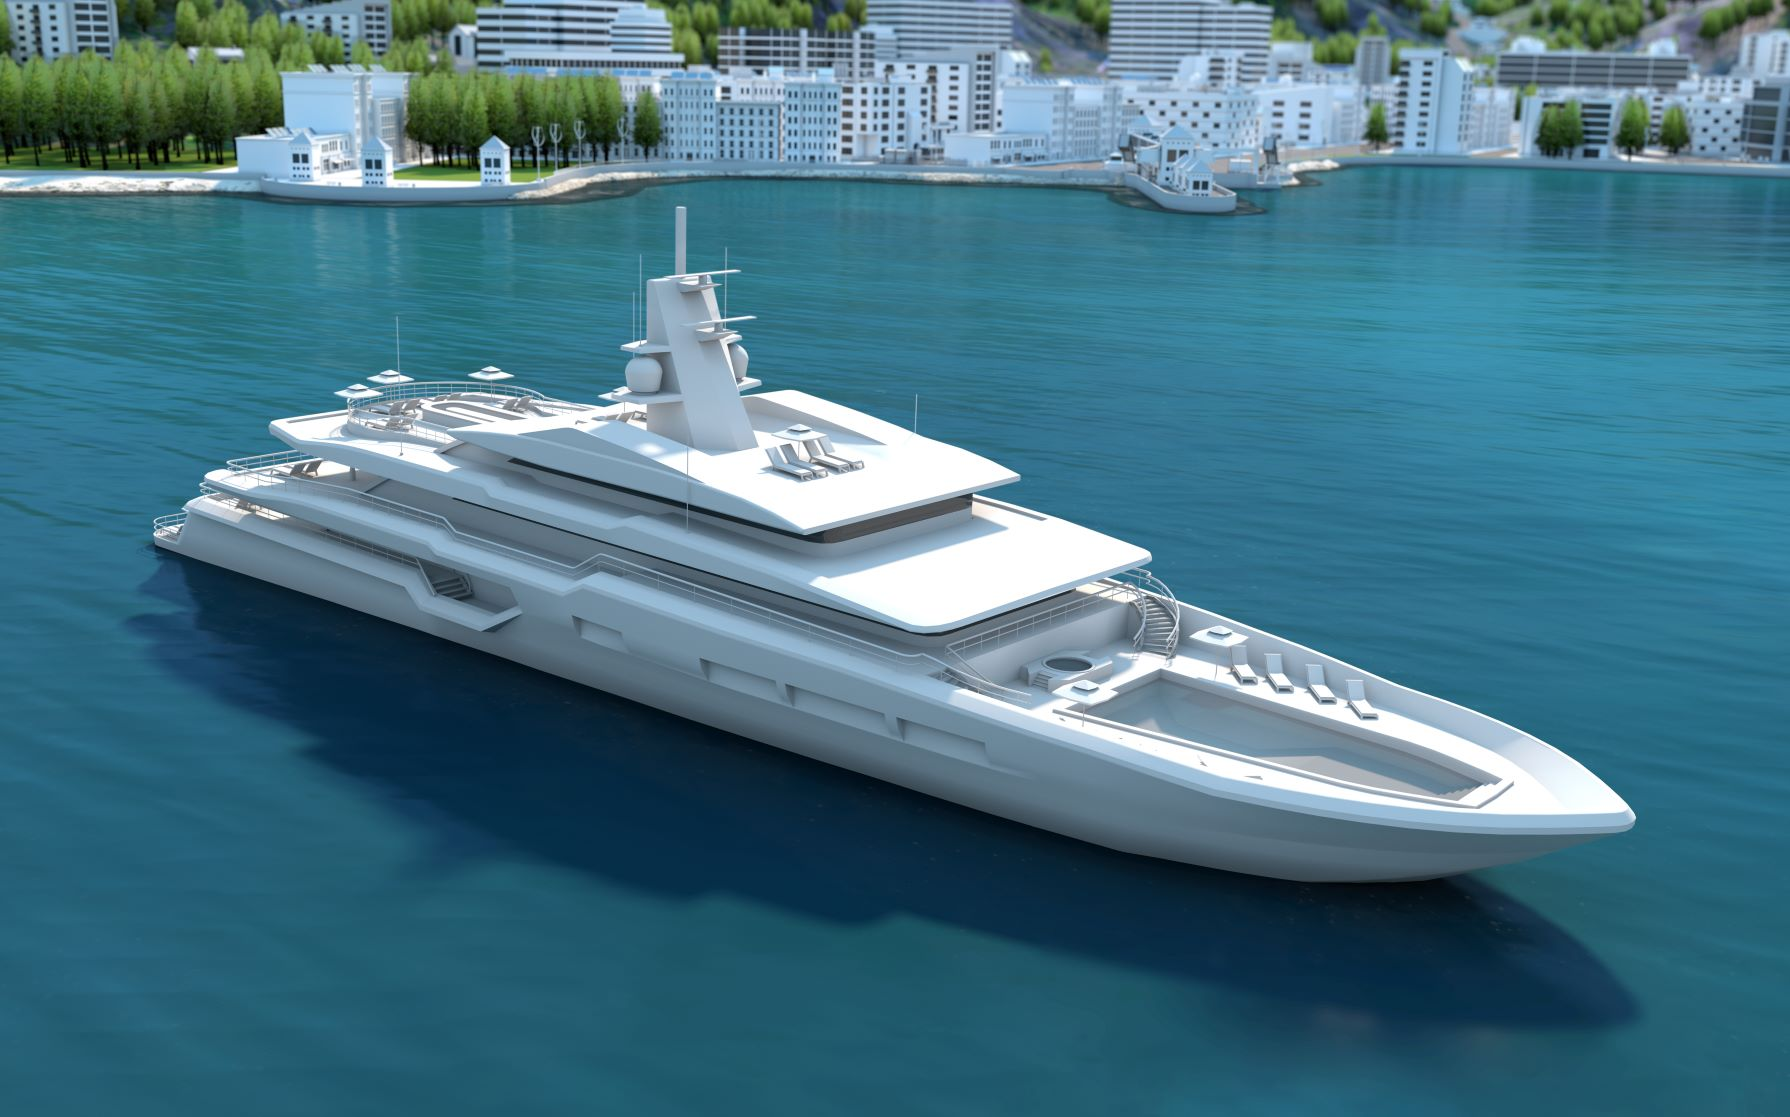 Azipod® electric propulsion for eco-friendly superyacht